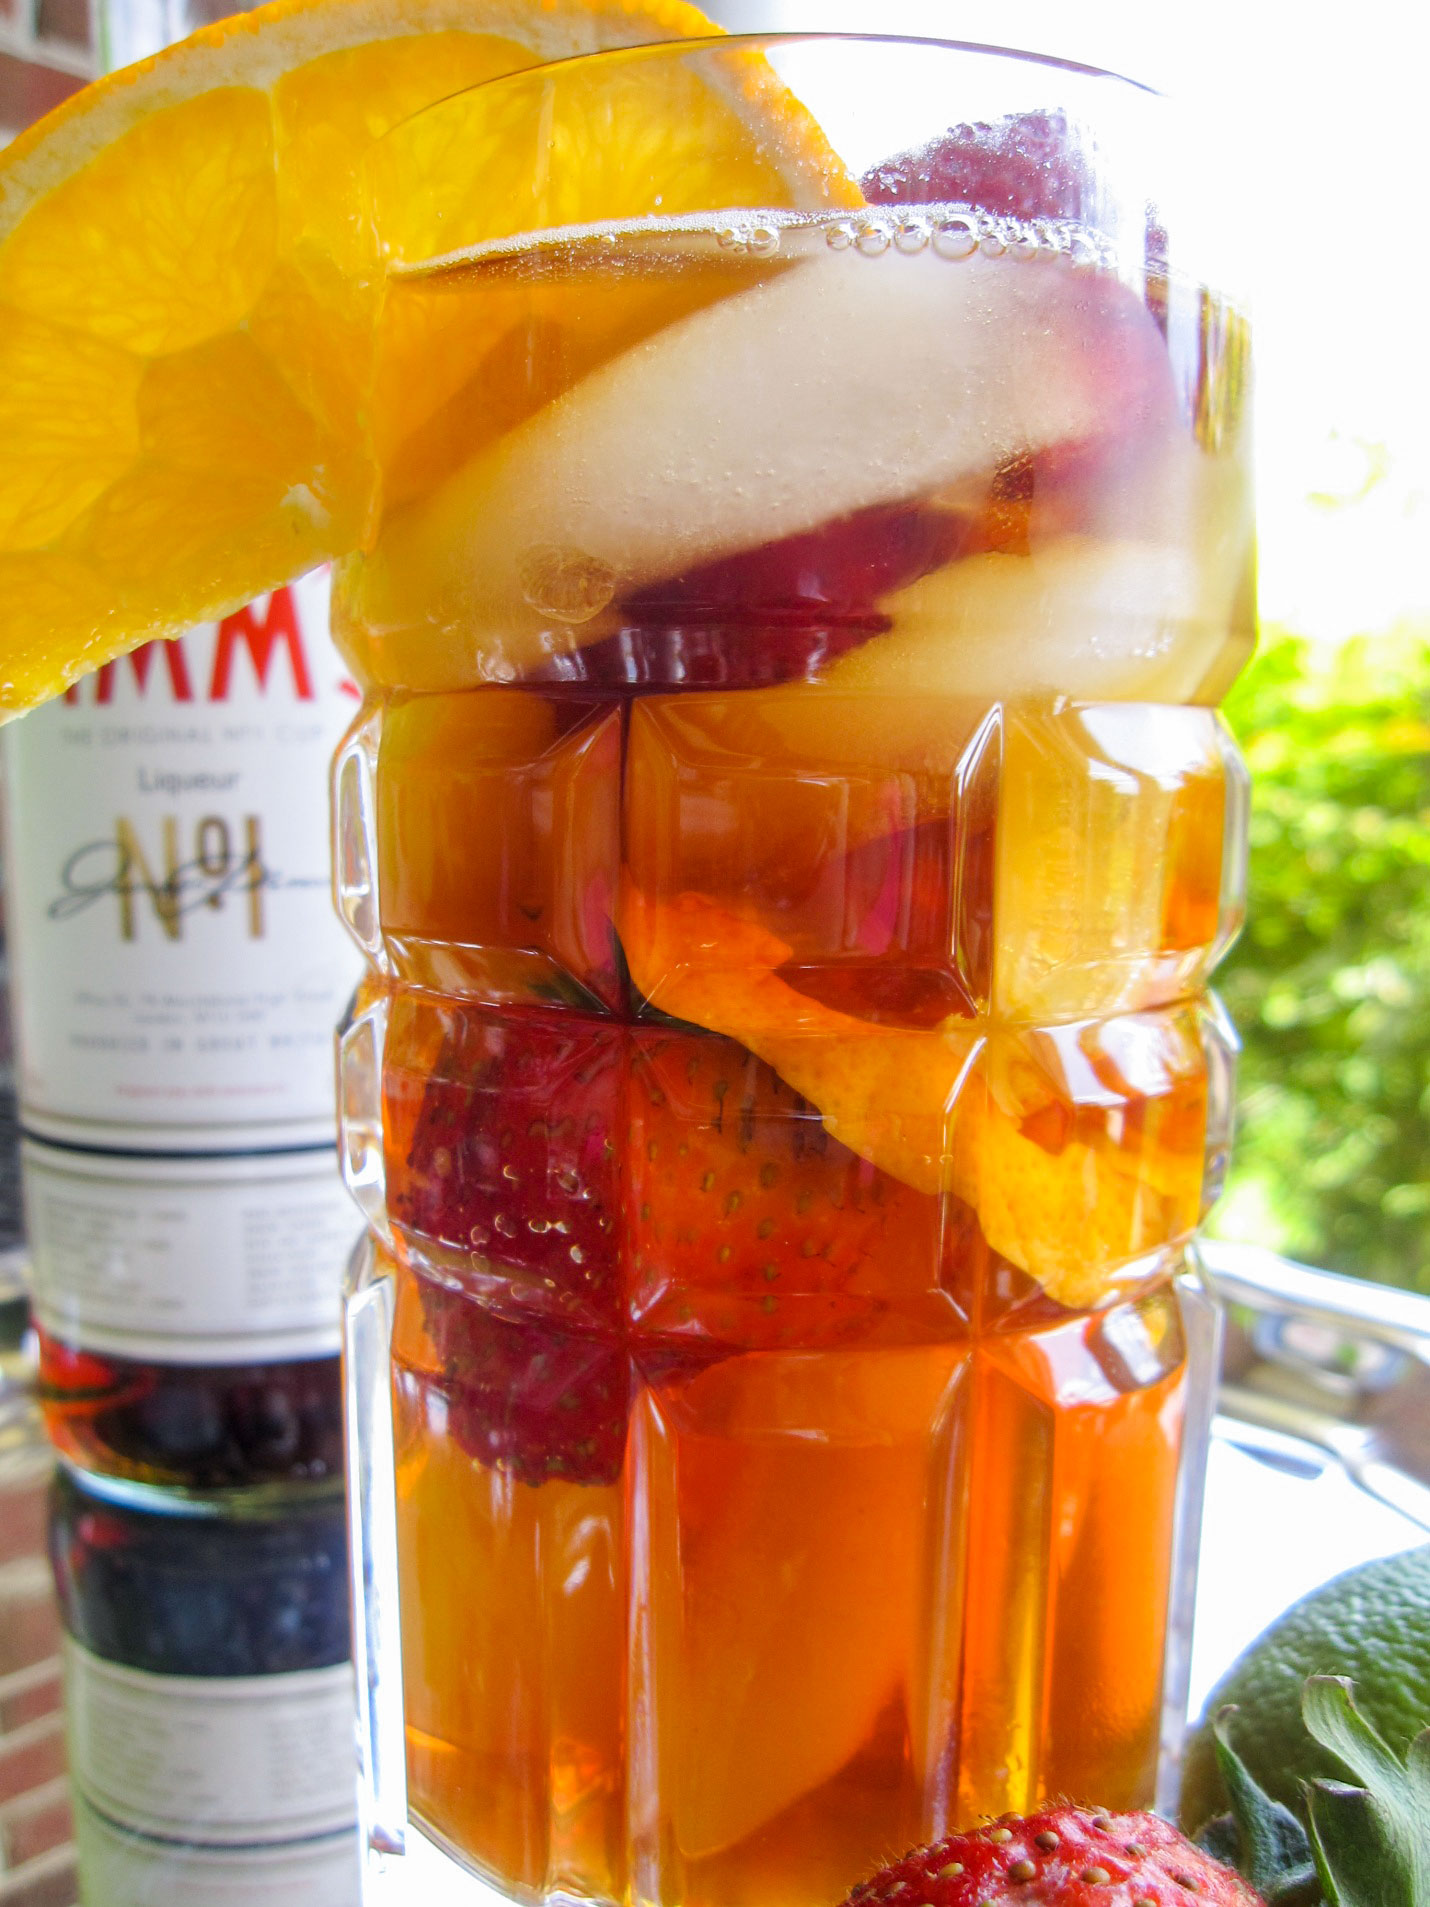 To make the Pimm's cup - Layer a silver cup or tall glass with ice, strawberries, orange slices, melon or cucumber wedges.1. Quarter organic oranges2. Pour in 1 shot Pimm's No. 13. Fill to the top with the Chilled Ascot Tea4. Squeeze the quartered orange juice on top and place the wedge into the drink. Stir and garnish with a strawberry & orange slice on rim of glass and a sprig of fresh mint.